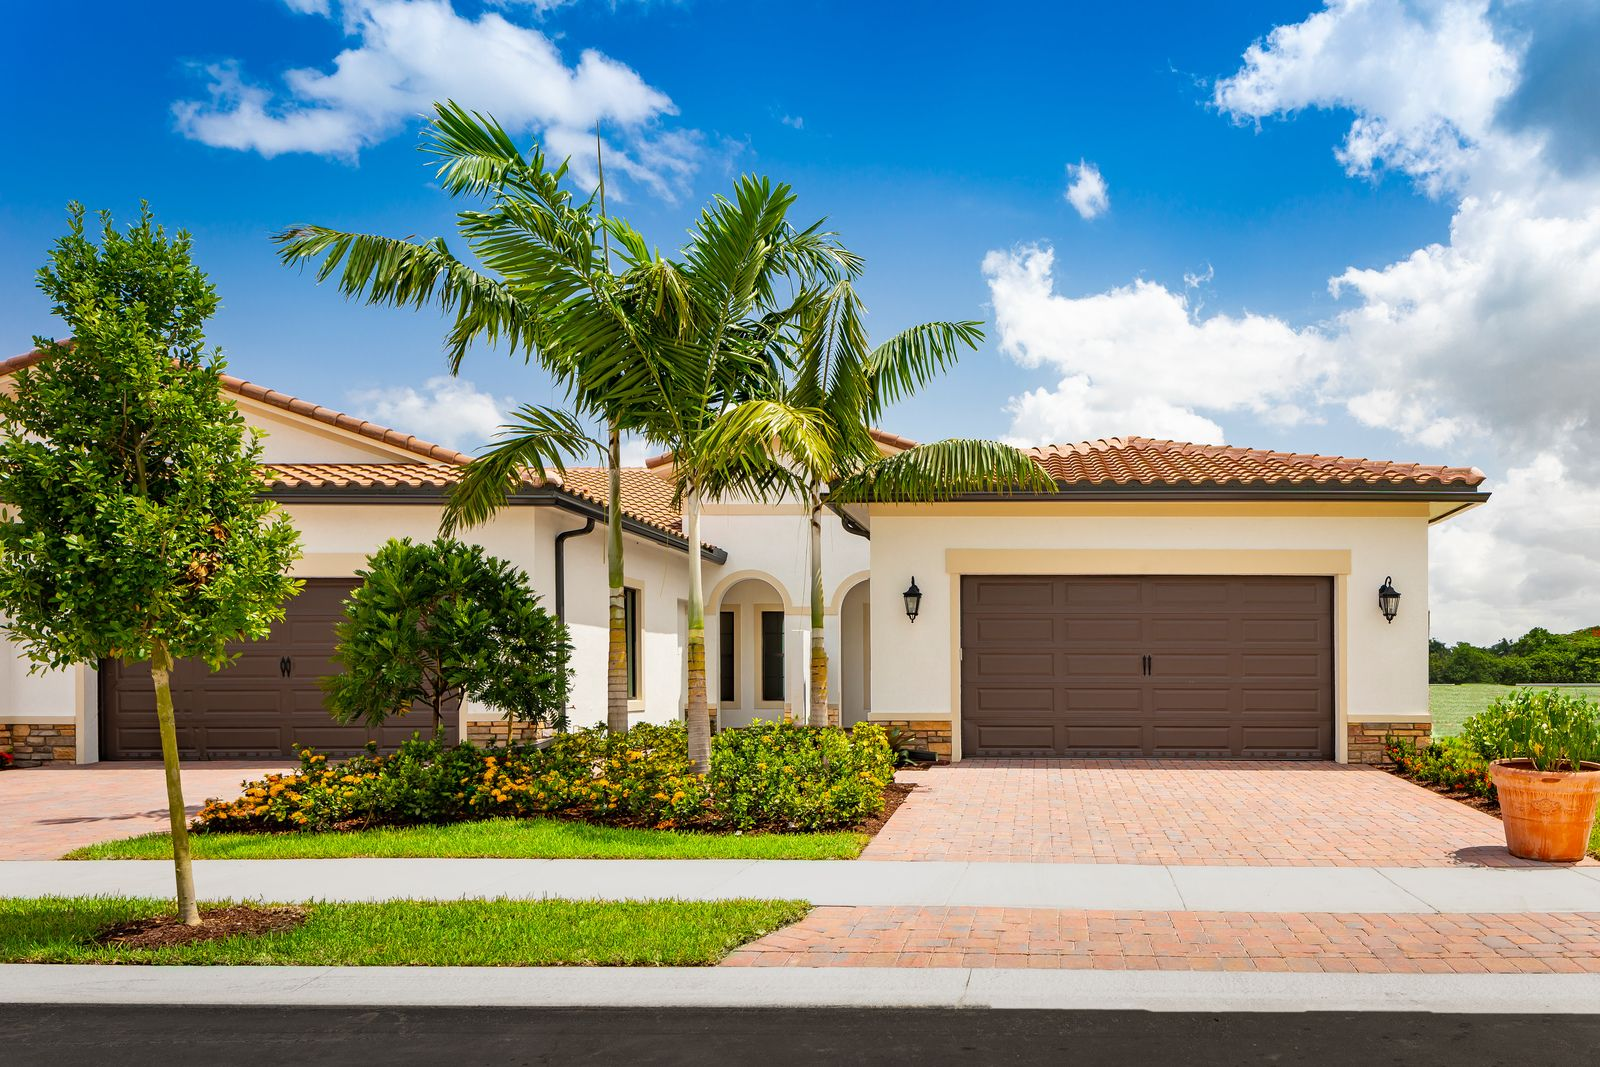 TOUR THE VILLAS AT THE FALLS AT PARKLAND Active Adult 55+ BY APPOINTMENT ONLY:Single-story Villas in the heart of Parkland. Enjoy 55+ Resort-Style living in an amenity-rich community with the largest Clubhouse in Broward County! Tour by appointment only.